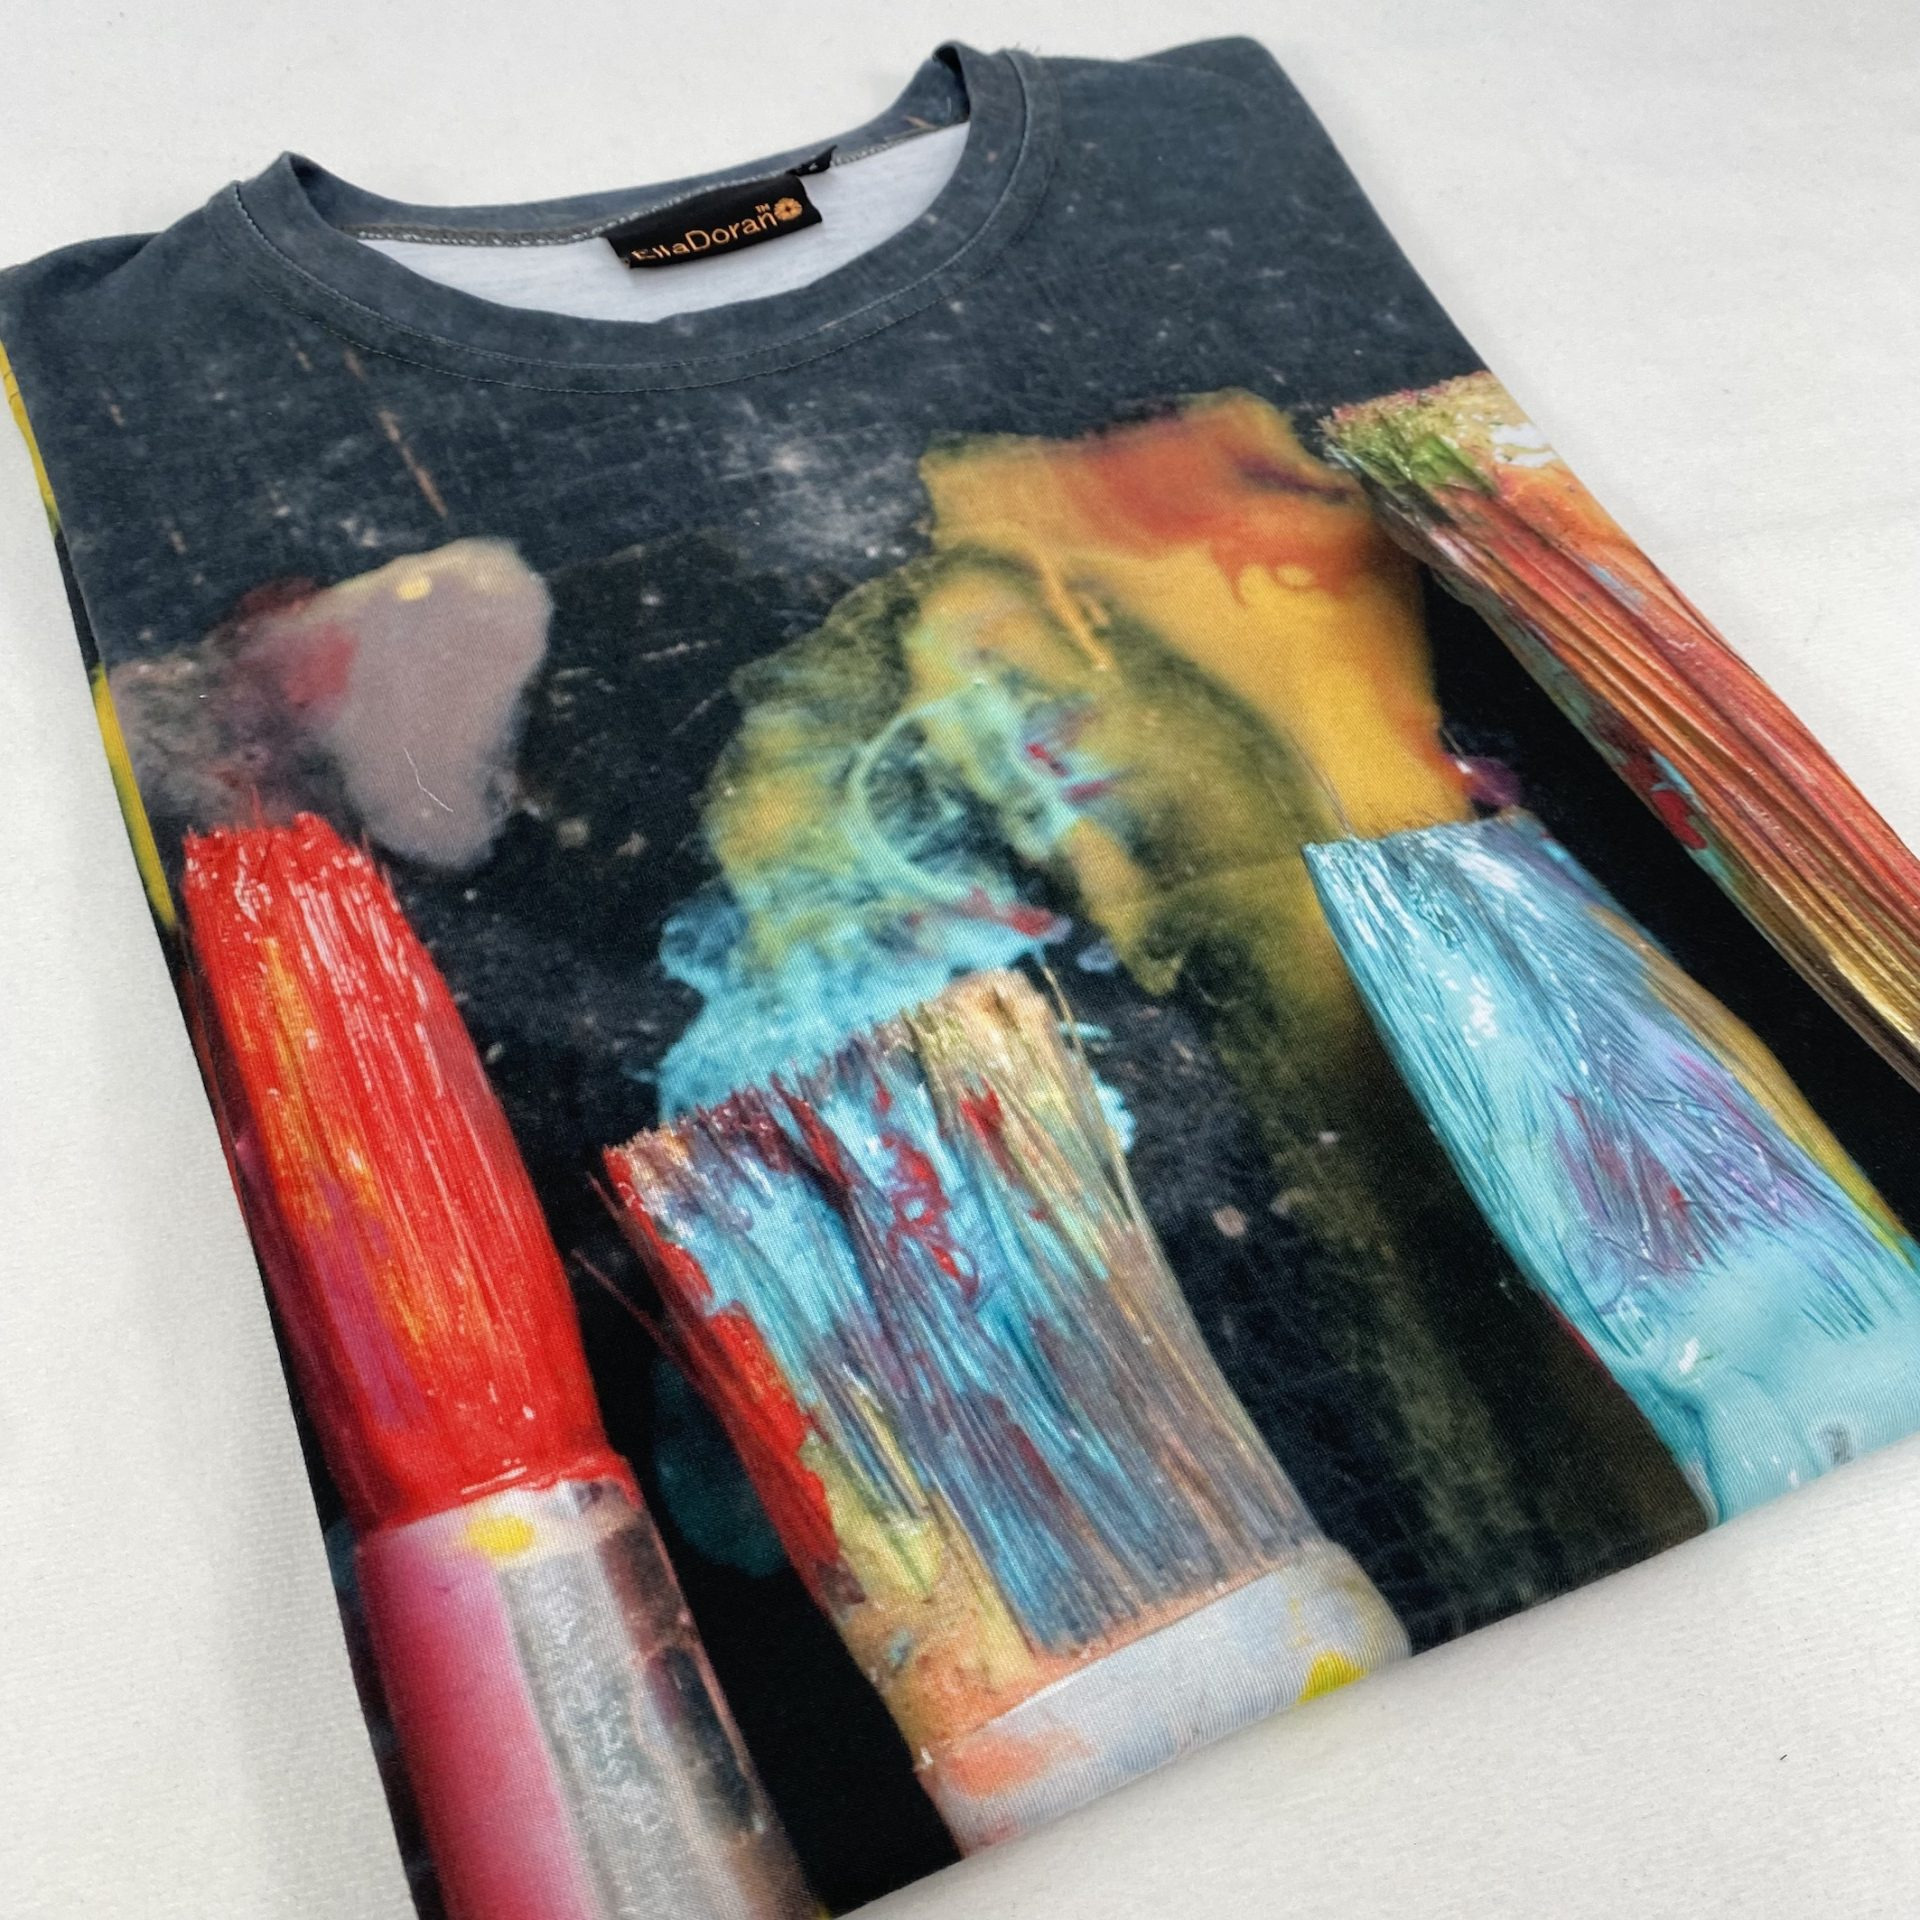 High qaulity printing and making by the Paul Bristow team for Ella Doran